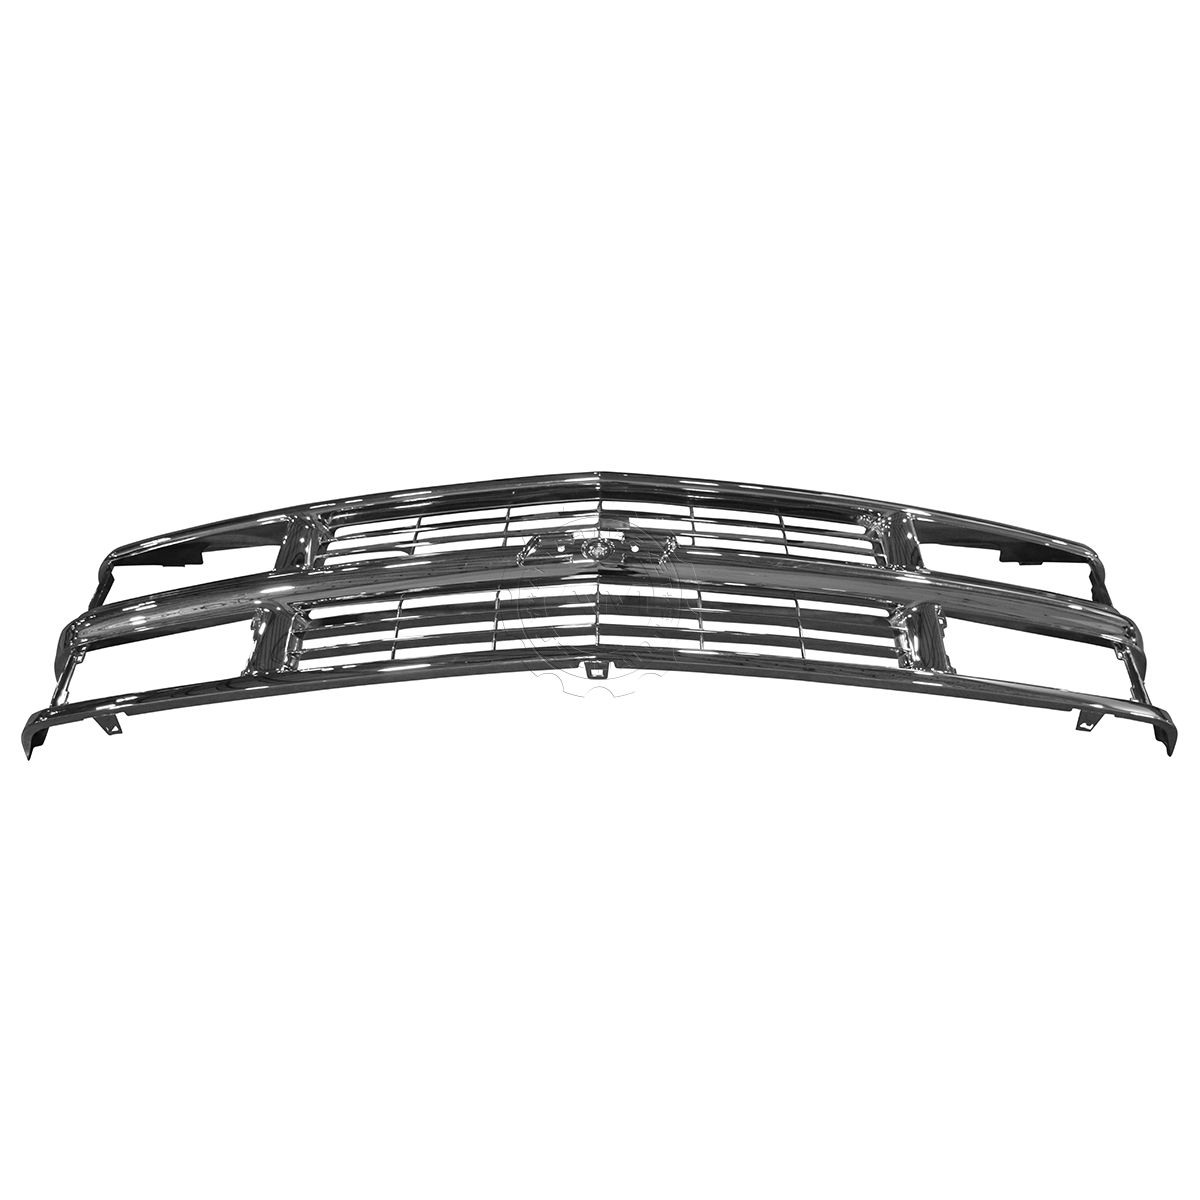 Grille Grill Chrome Front End For Chevy C K Pickup Truck